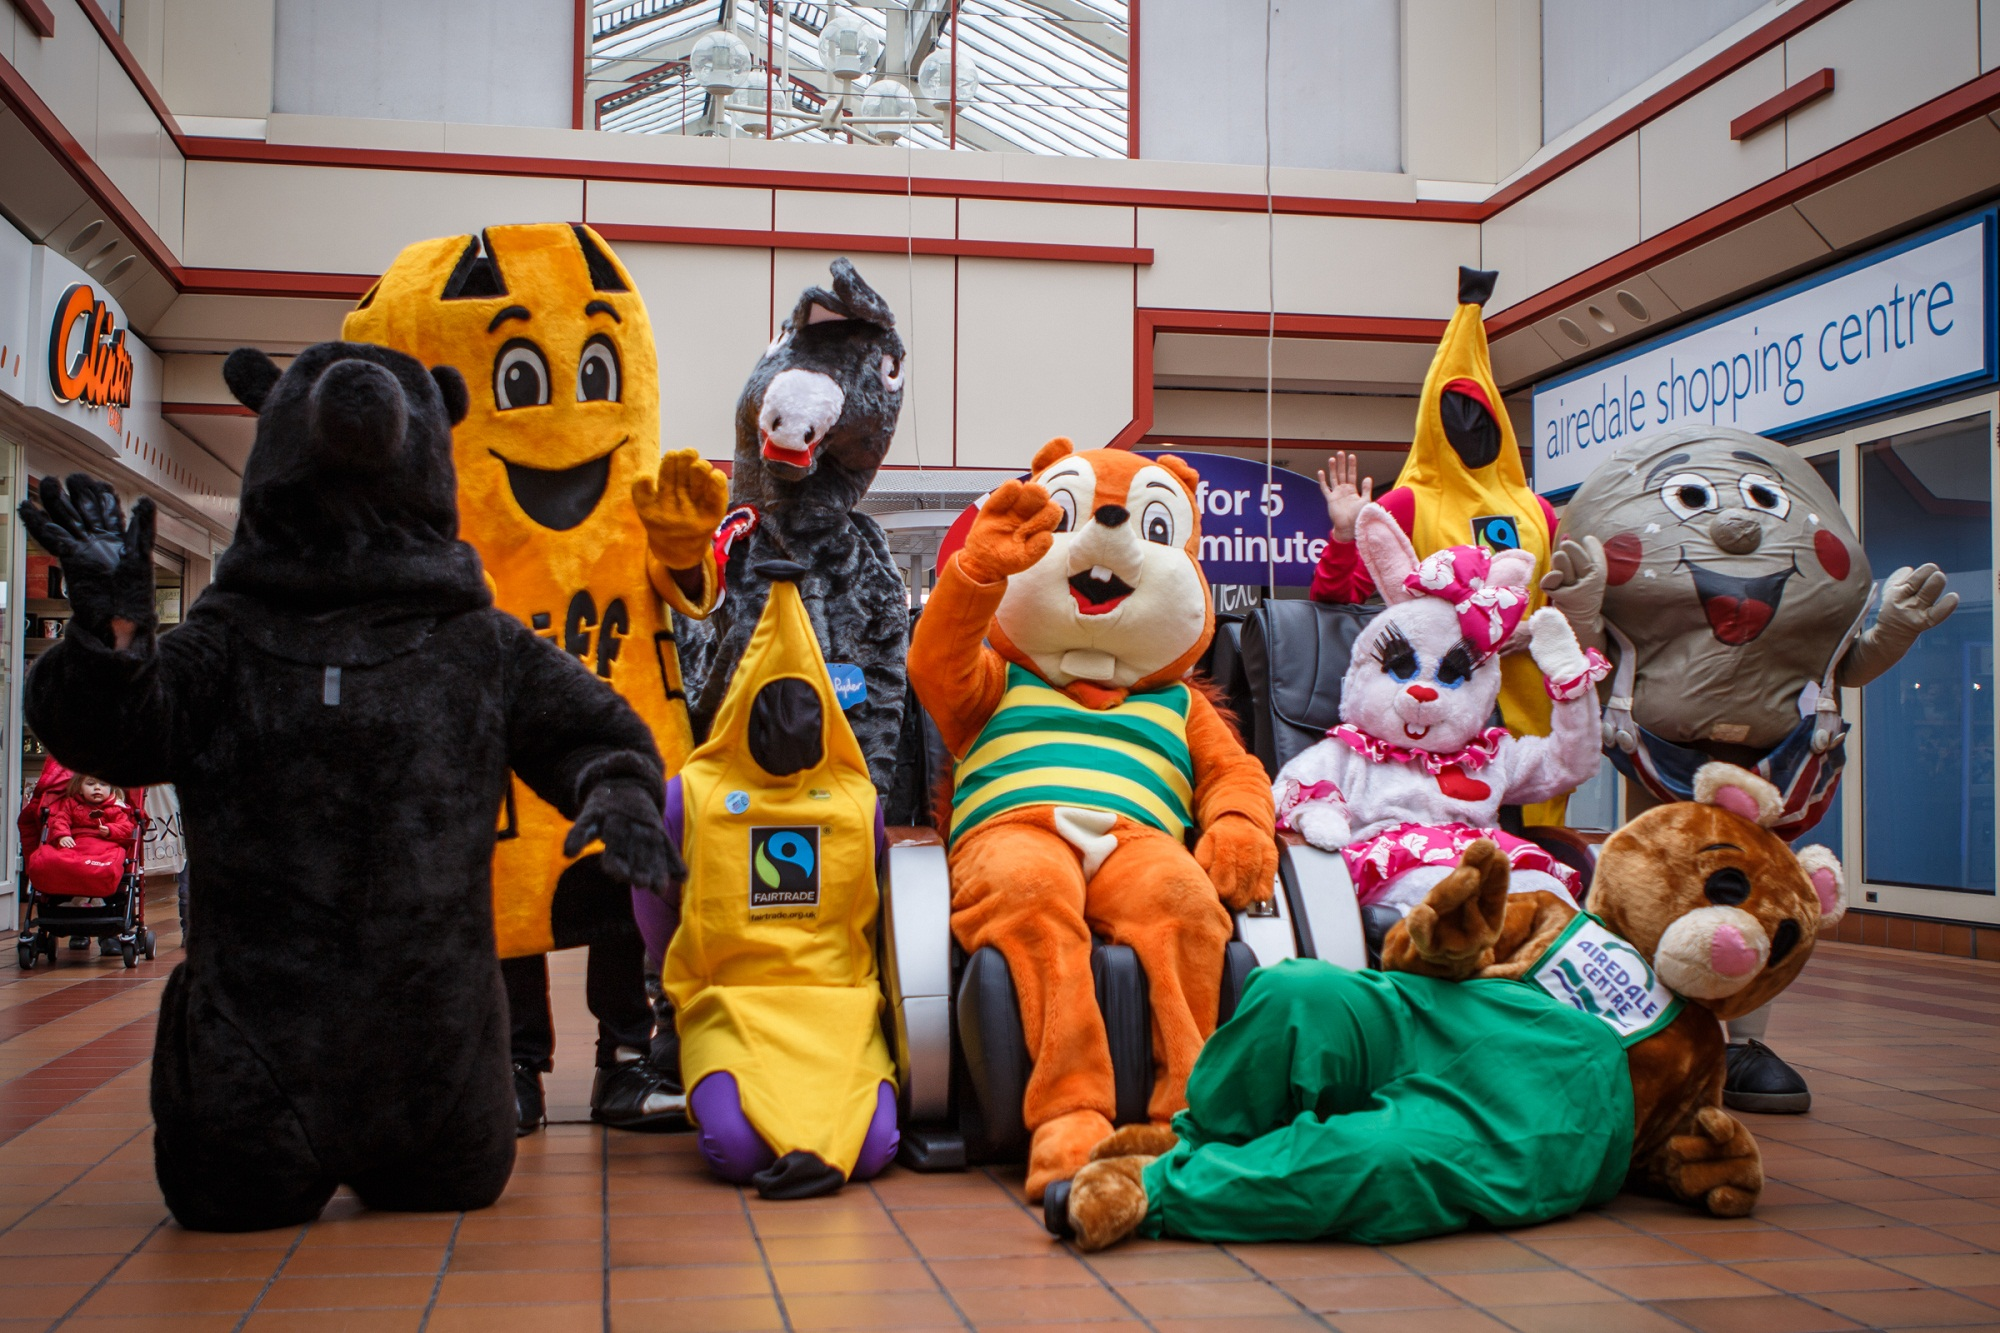 Some of the mascots before the race,  pictured in the Airedale Shopping Centre